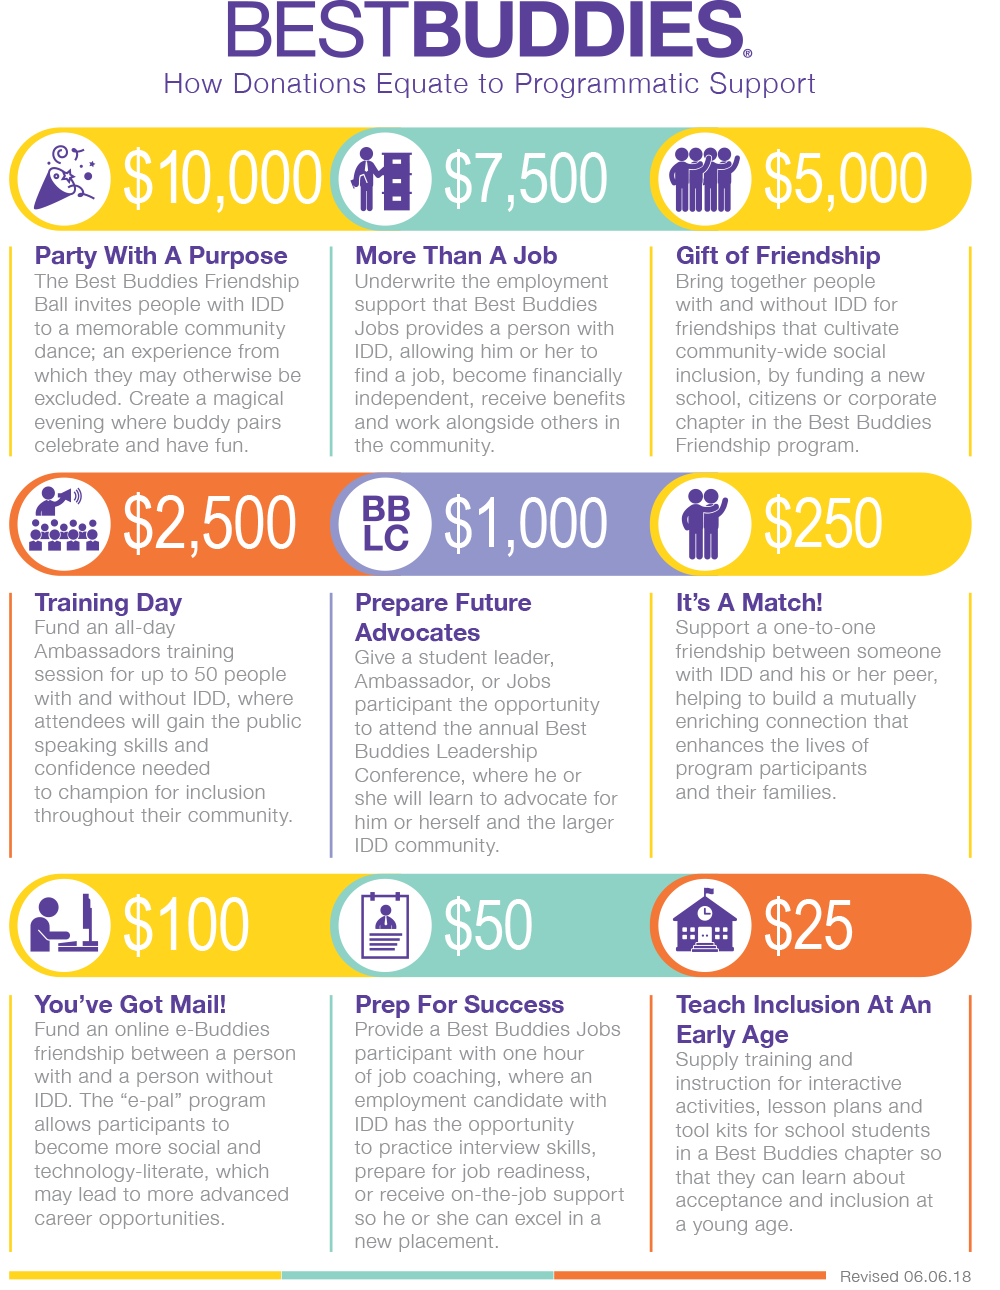 Where the money goes infographic